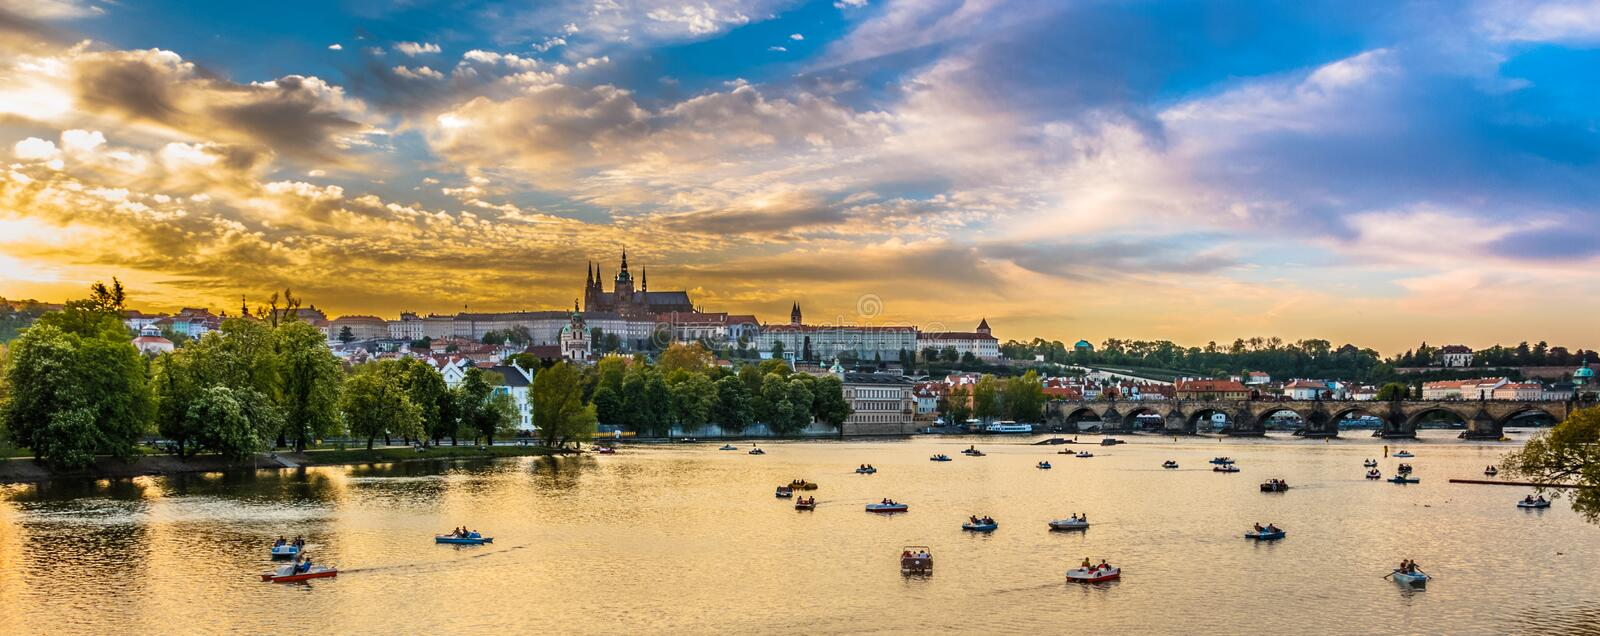 Panoramic view of Vltava river with boats, Prague, Czech Republic. Panoramic view of Vltava river in sunset with boats, Prague, Czech Republic, 2016 stock photo